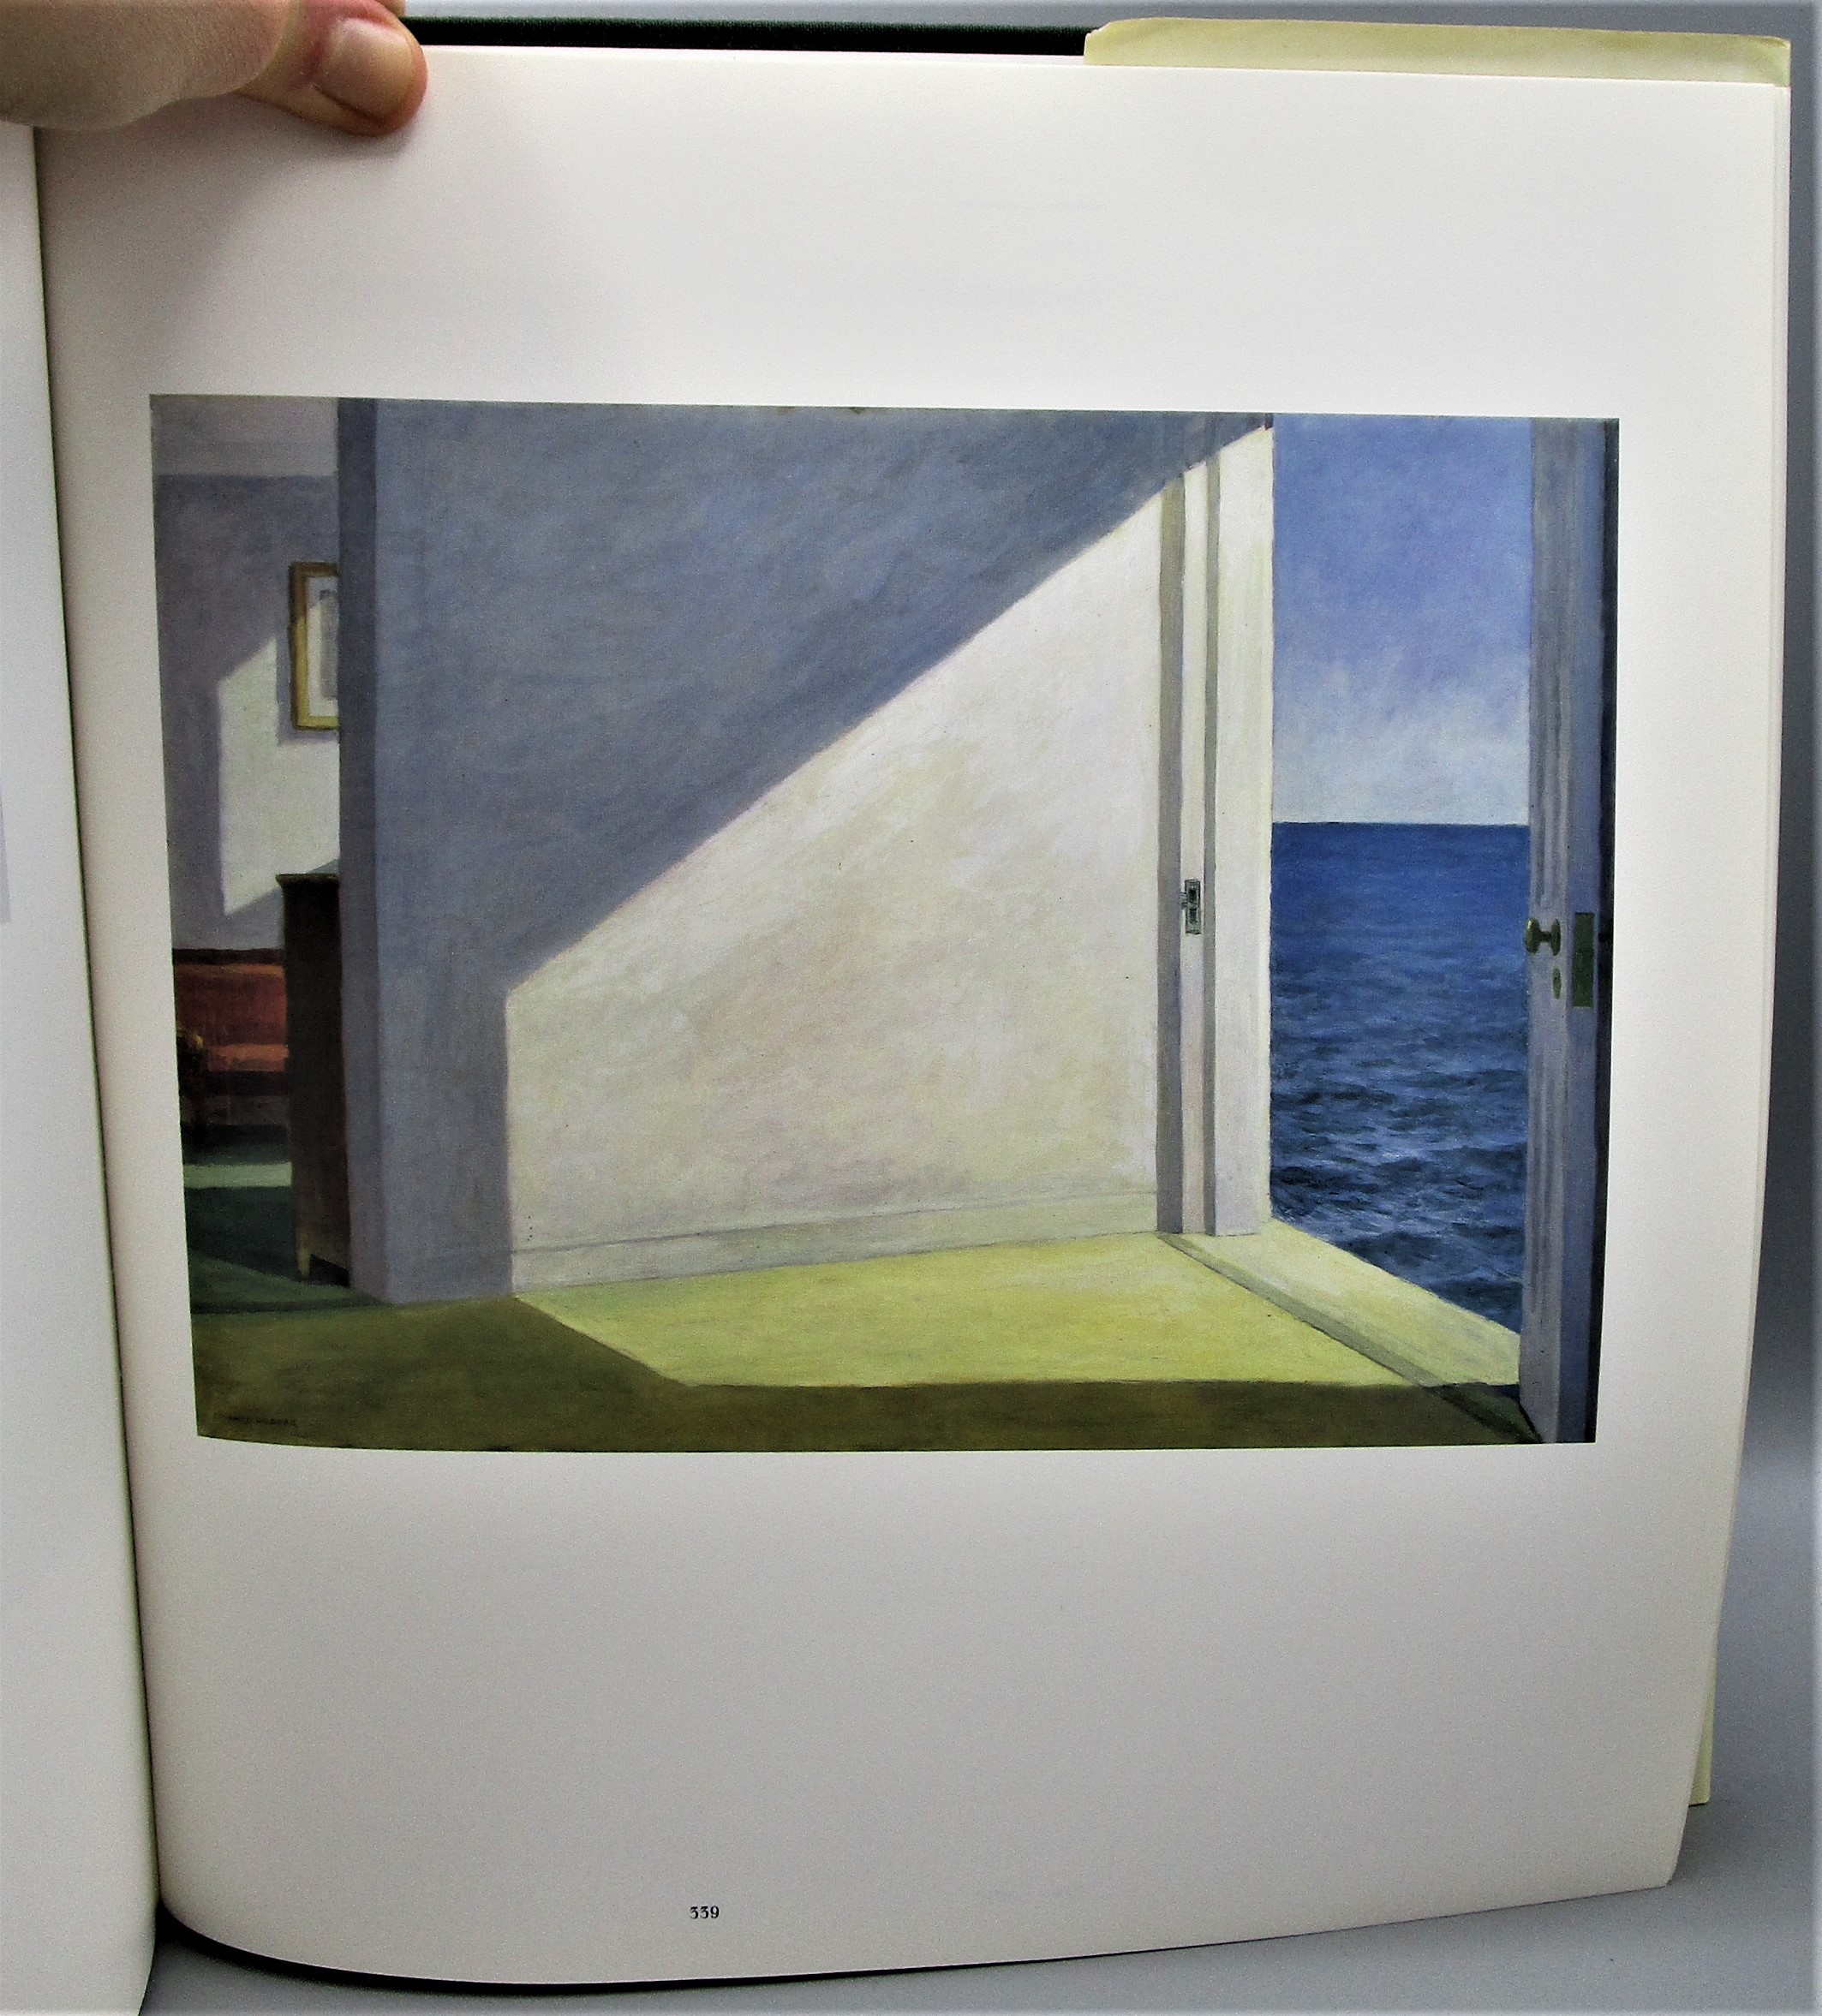 THE COMPLETE OIL PAINTINGS OF EDWARD HOPPER - 2001 [1st Ed]